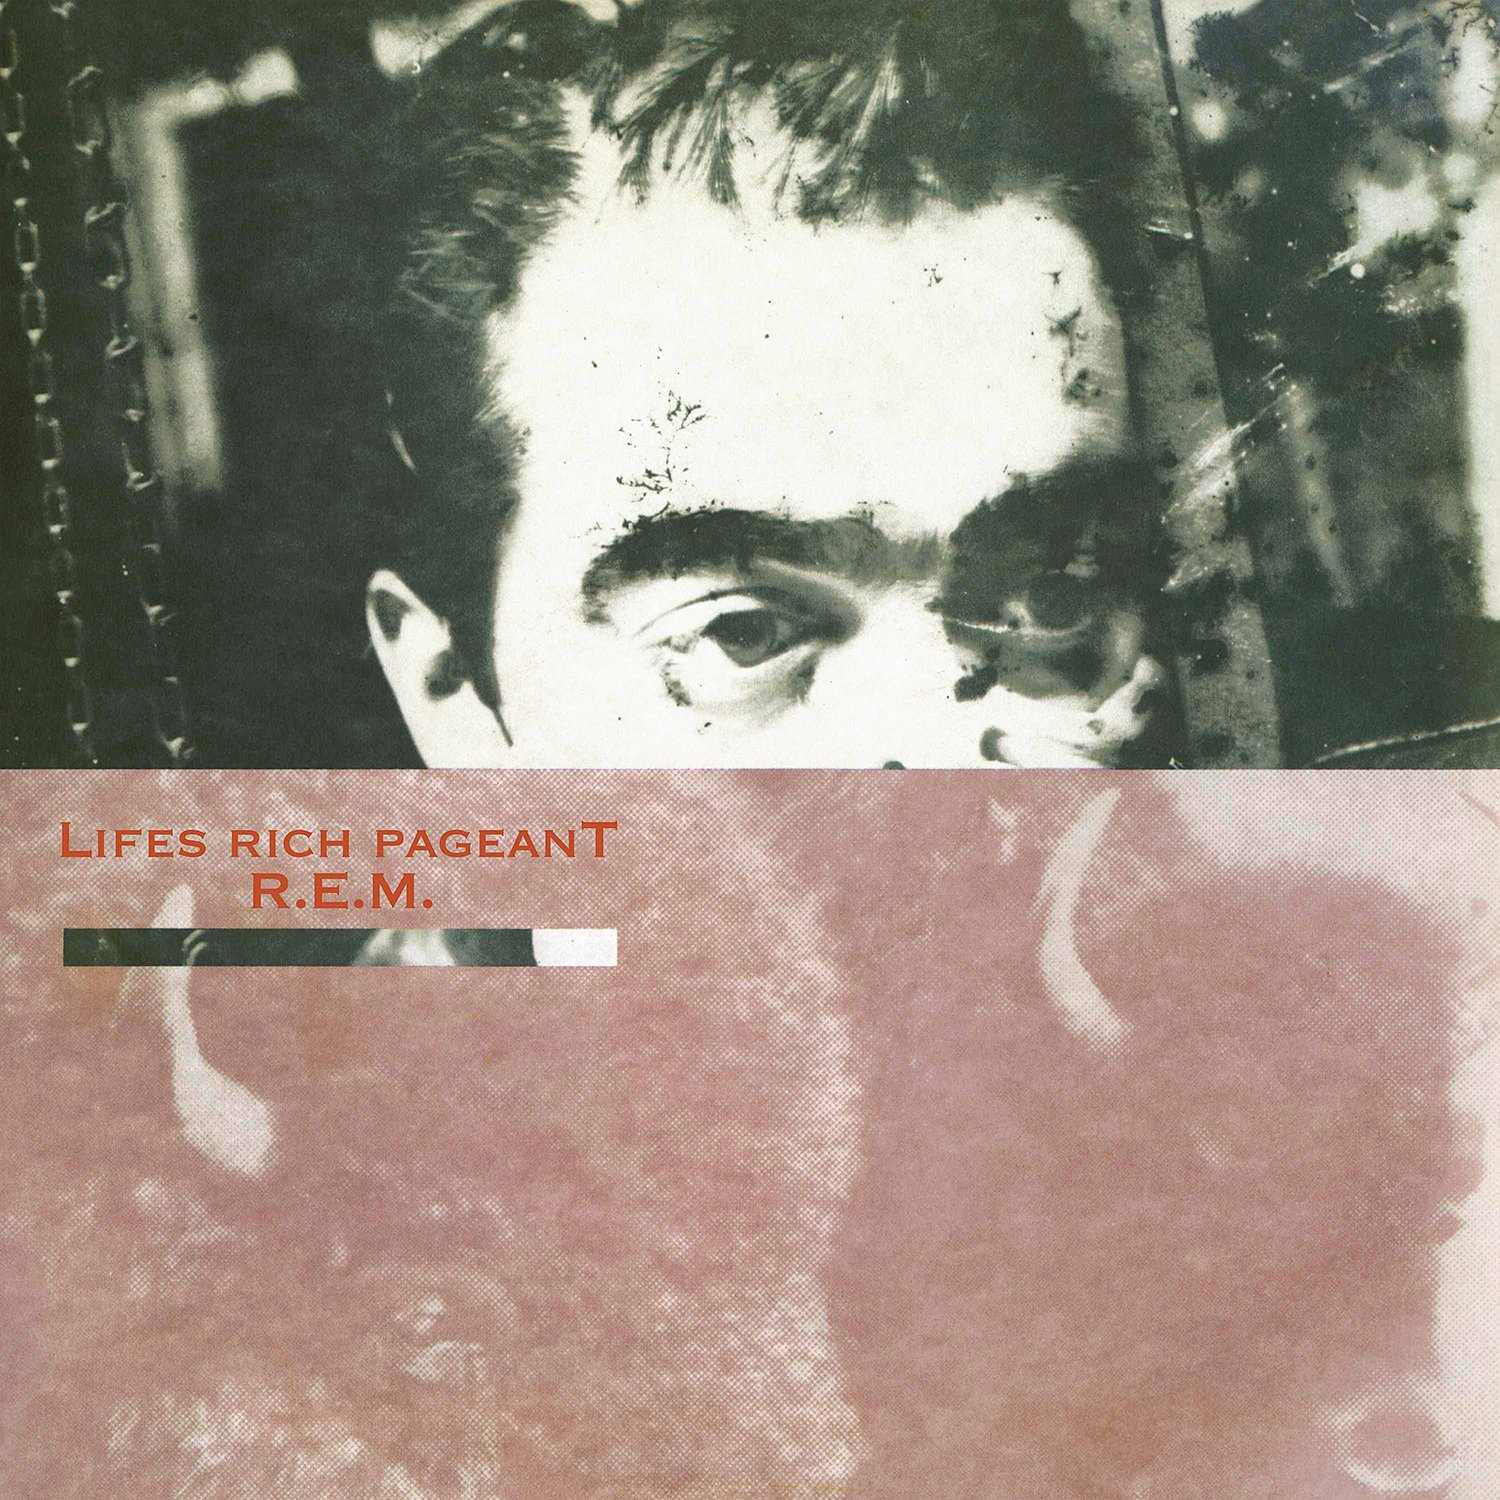 R.E.M., Life's Rich Pageant: 25th Anniversary Edition